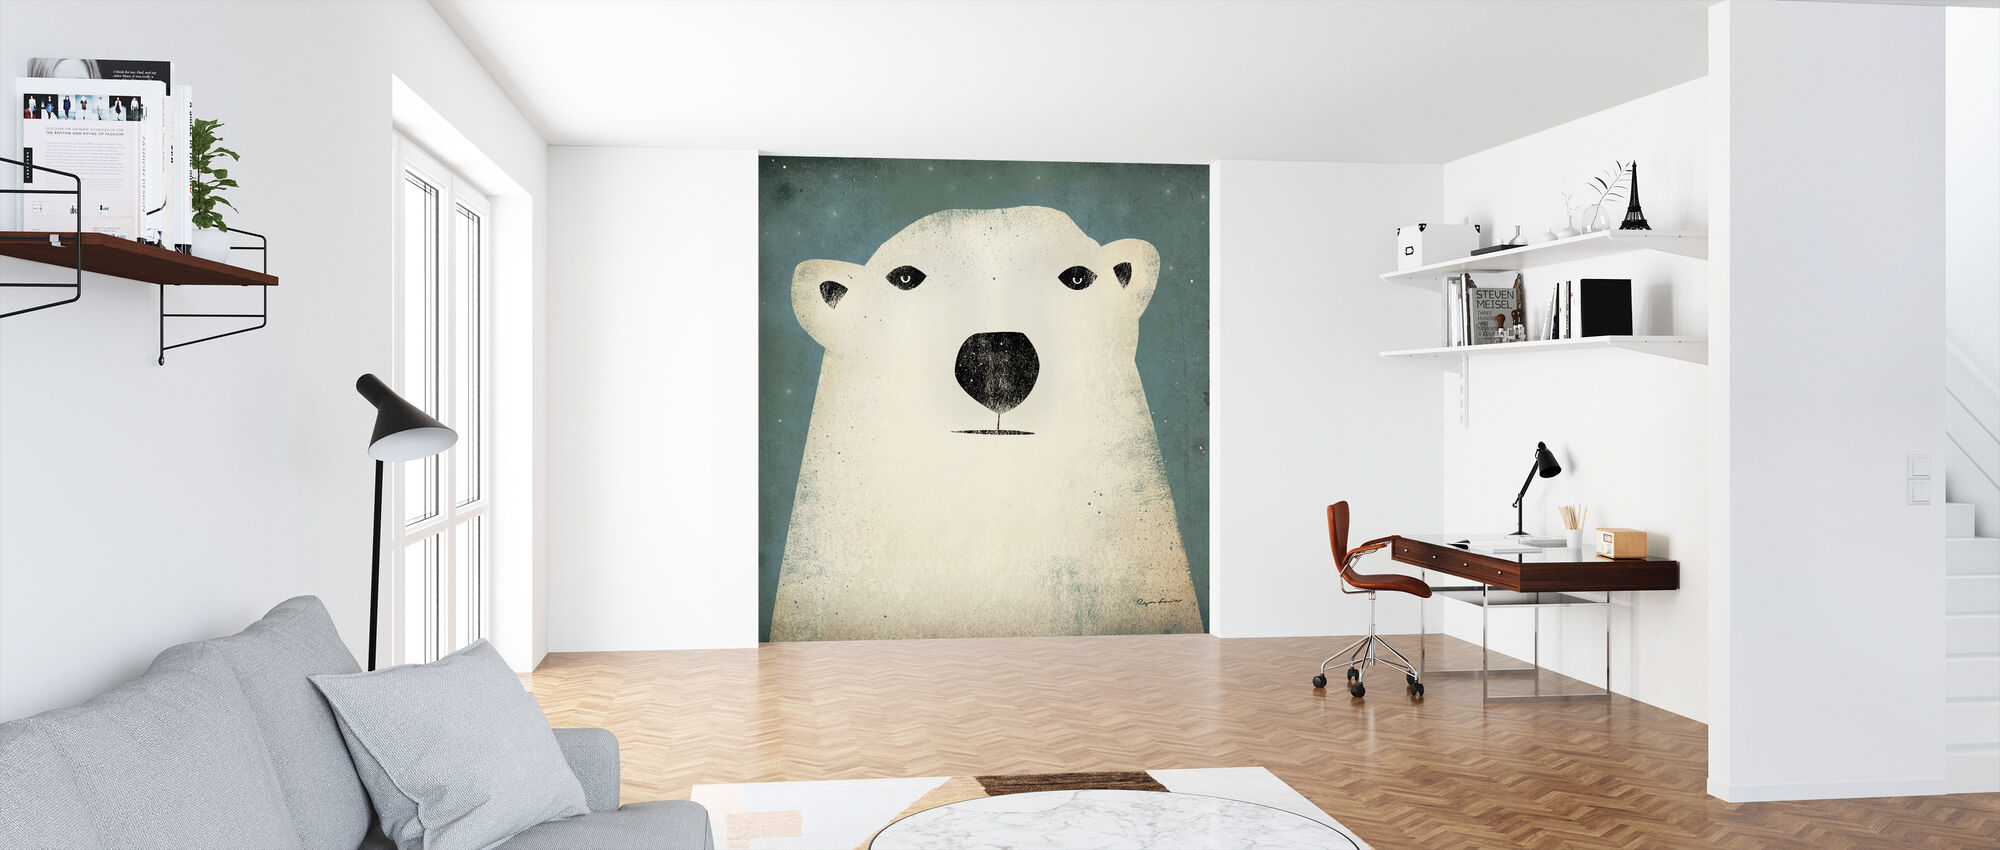 Ryan Fowler - Polar Bear - Wallpaper - Office